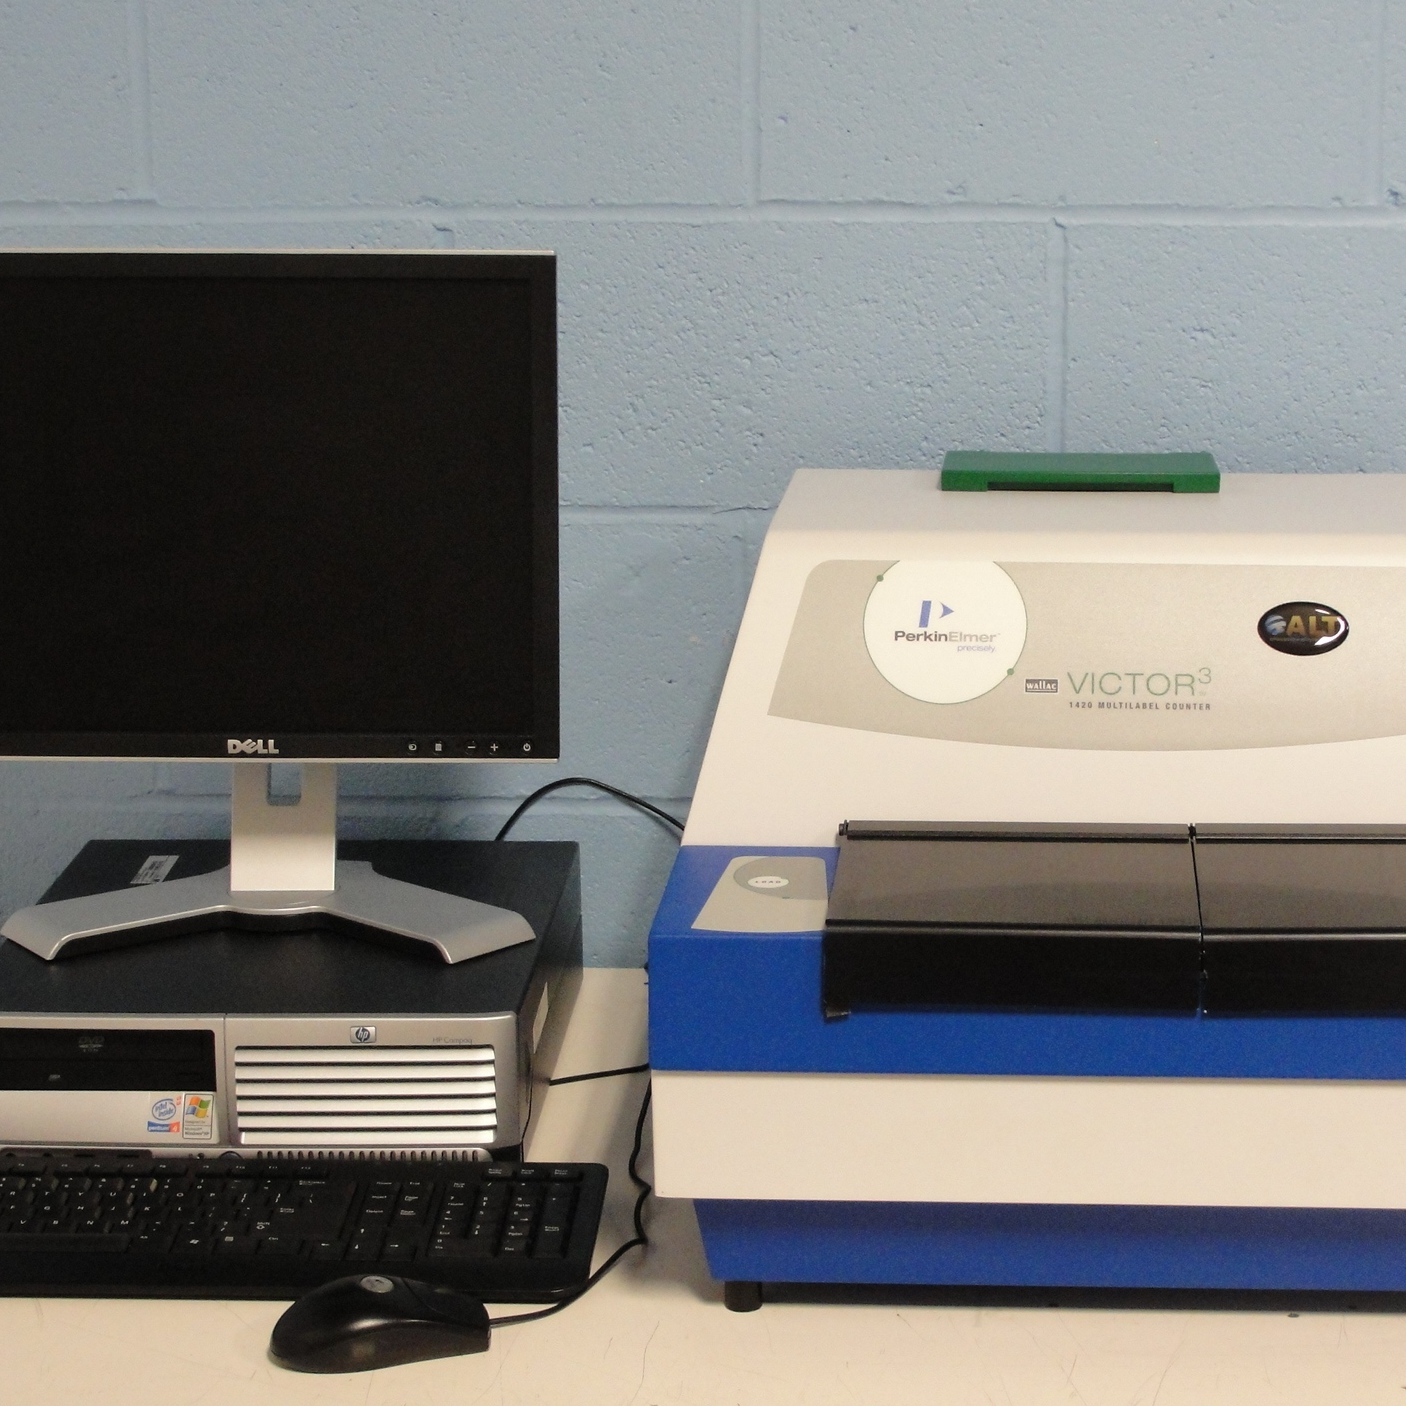 PerkinElmer Victor3 1420-033 Multilabel Counter Image